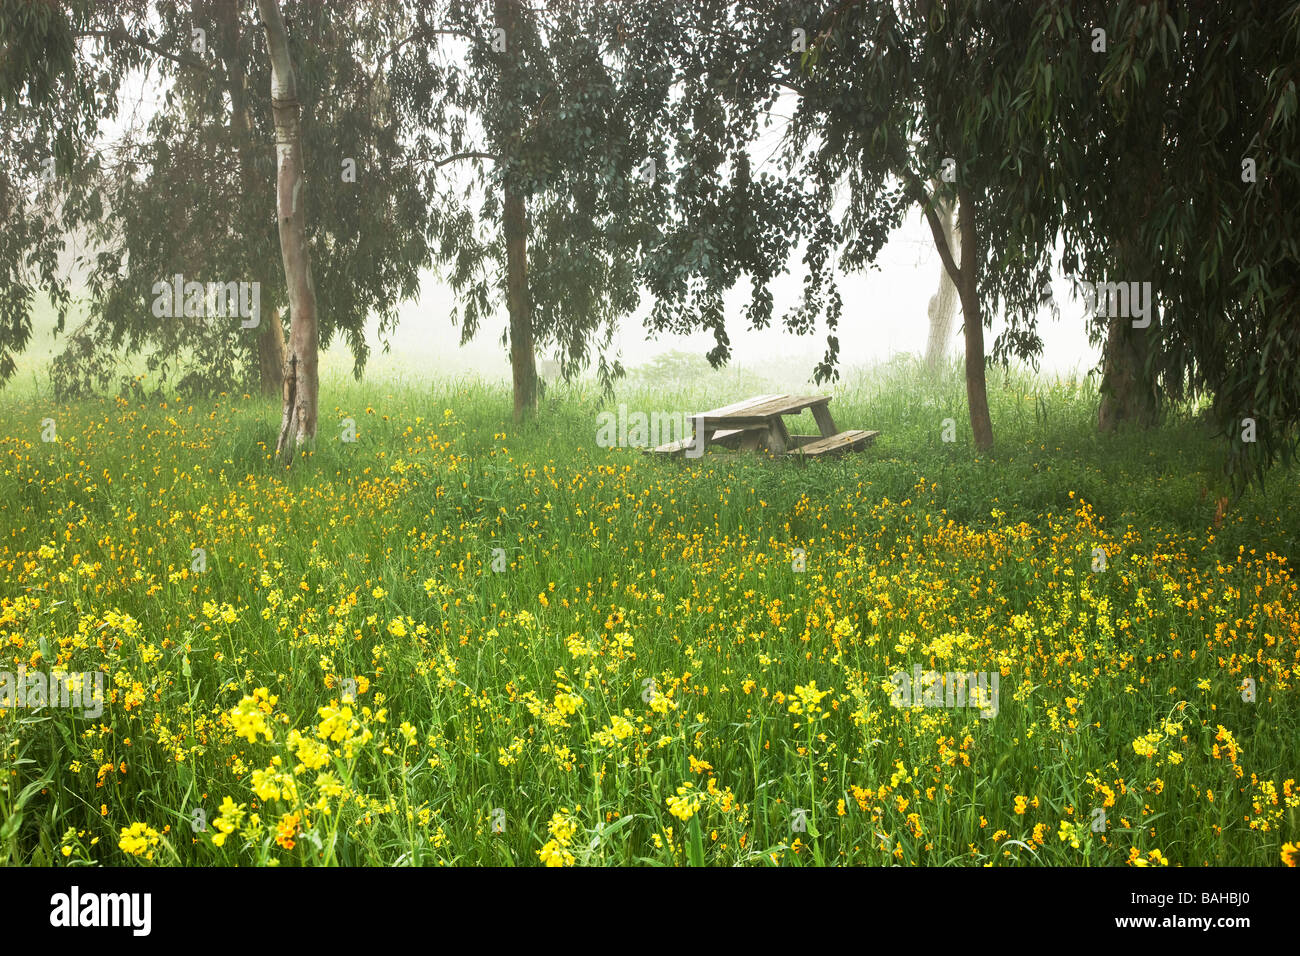 Eucalyptus trees, foggy meadow, Mustard & Fiddleneck wildflowers, empty picnic table. Stock Photo